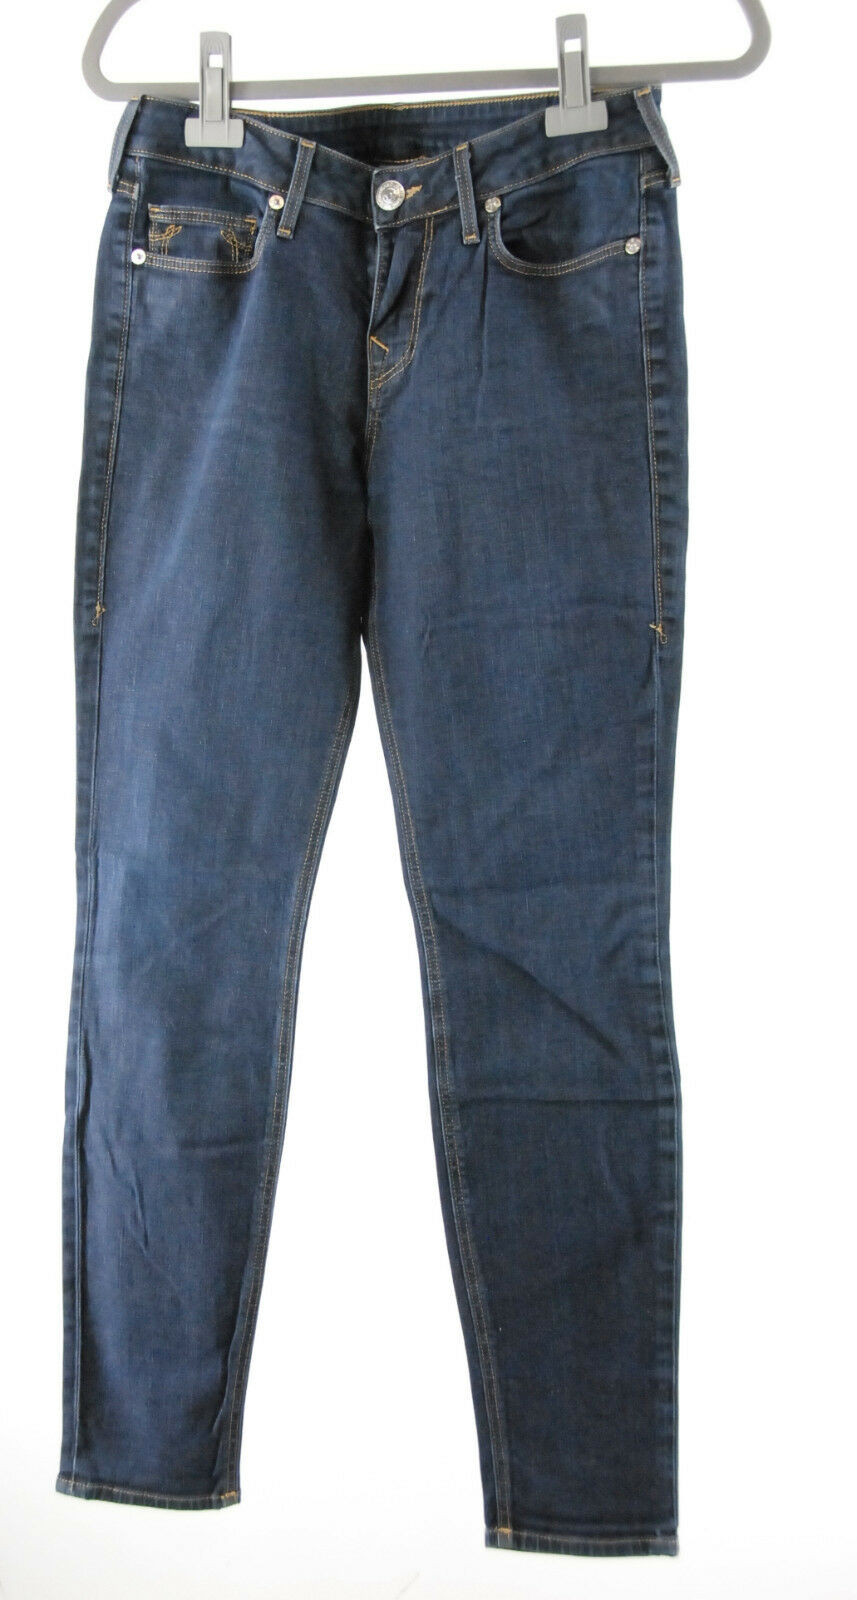 True Relgion Jeans blau W 29 stretch Hose wie neu